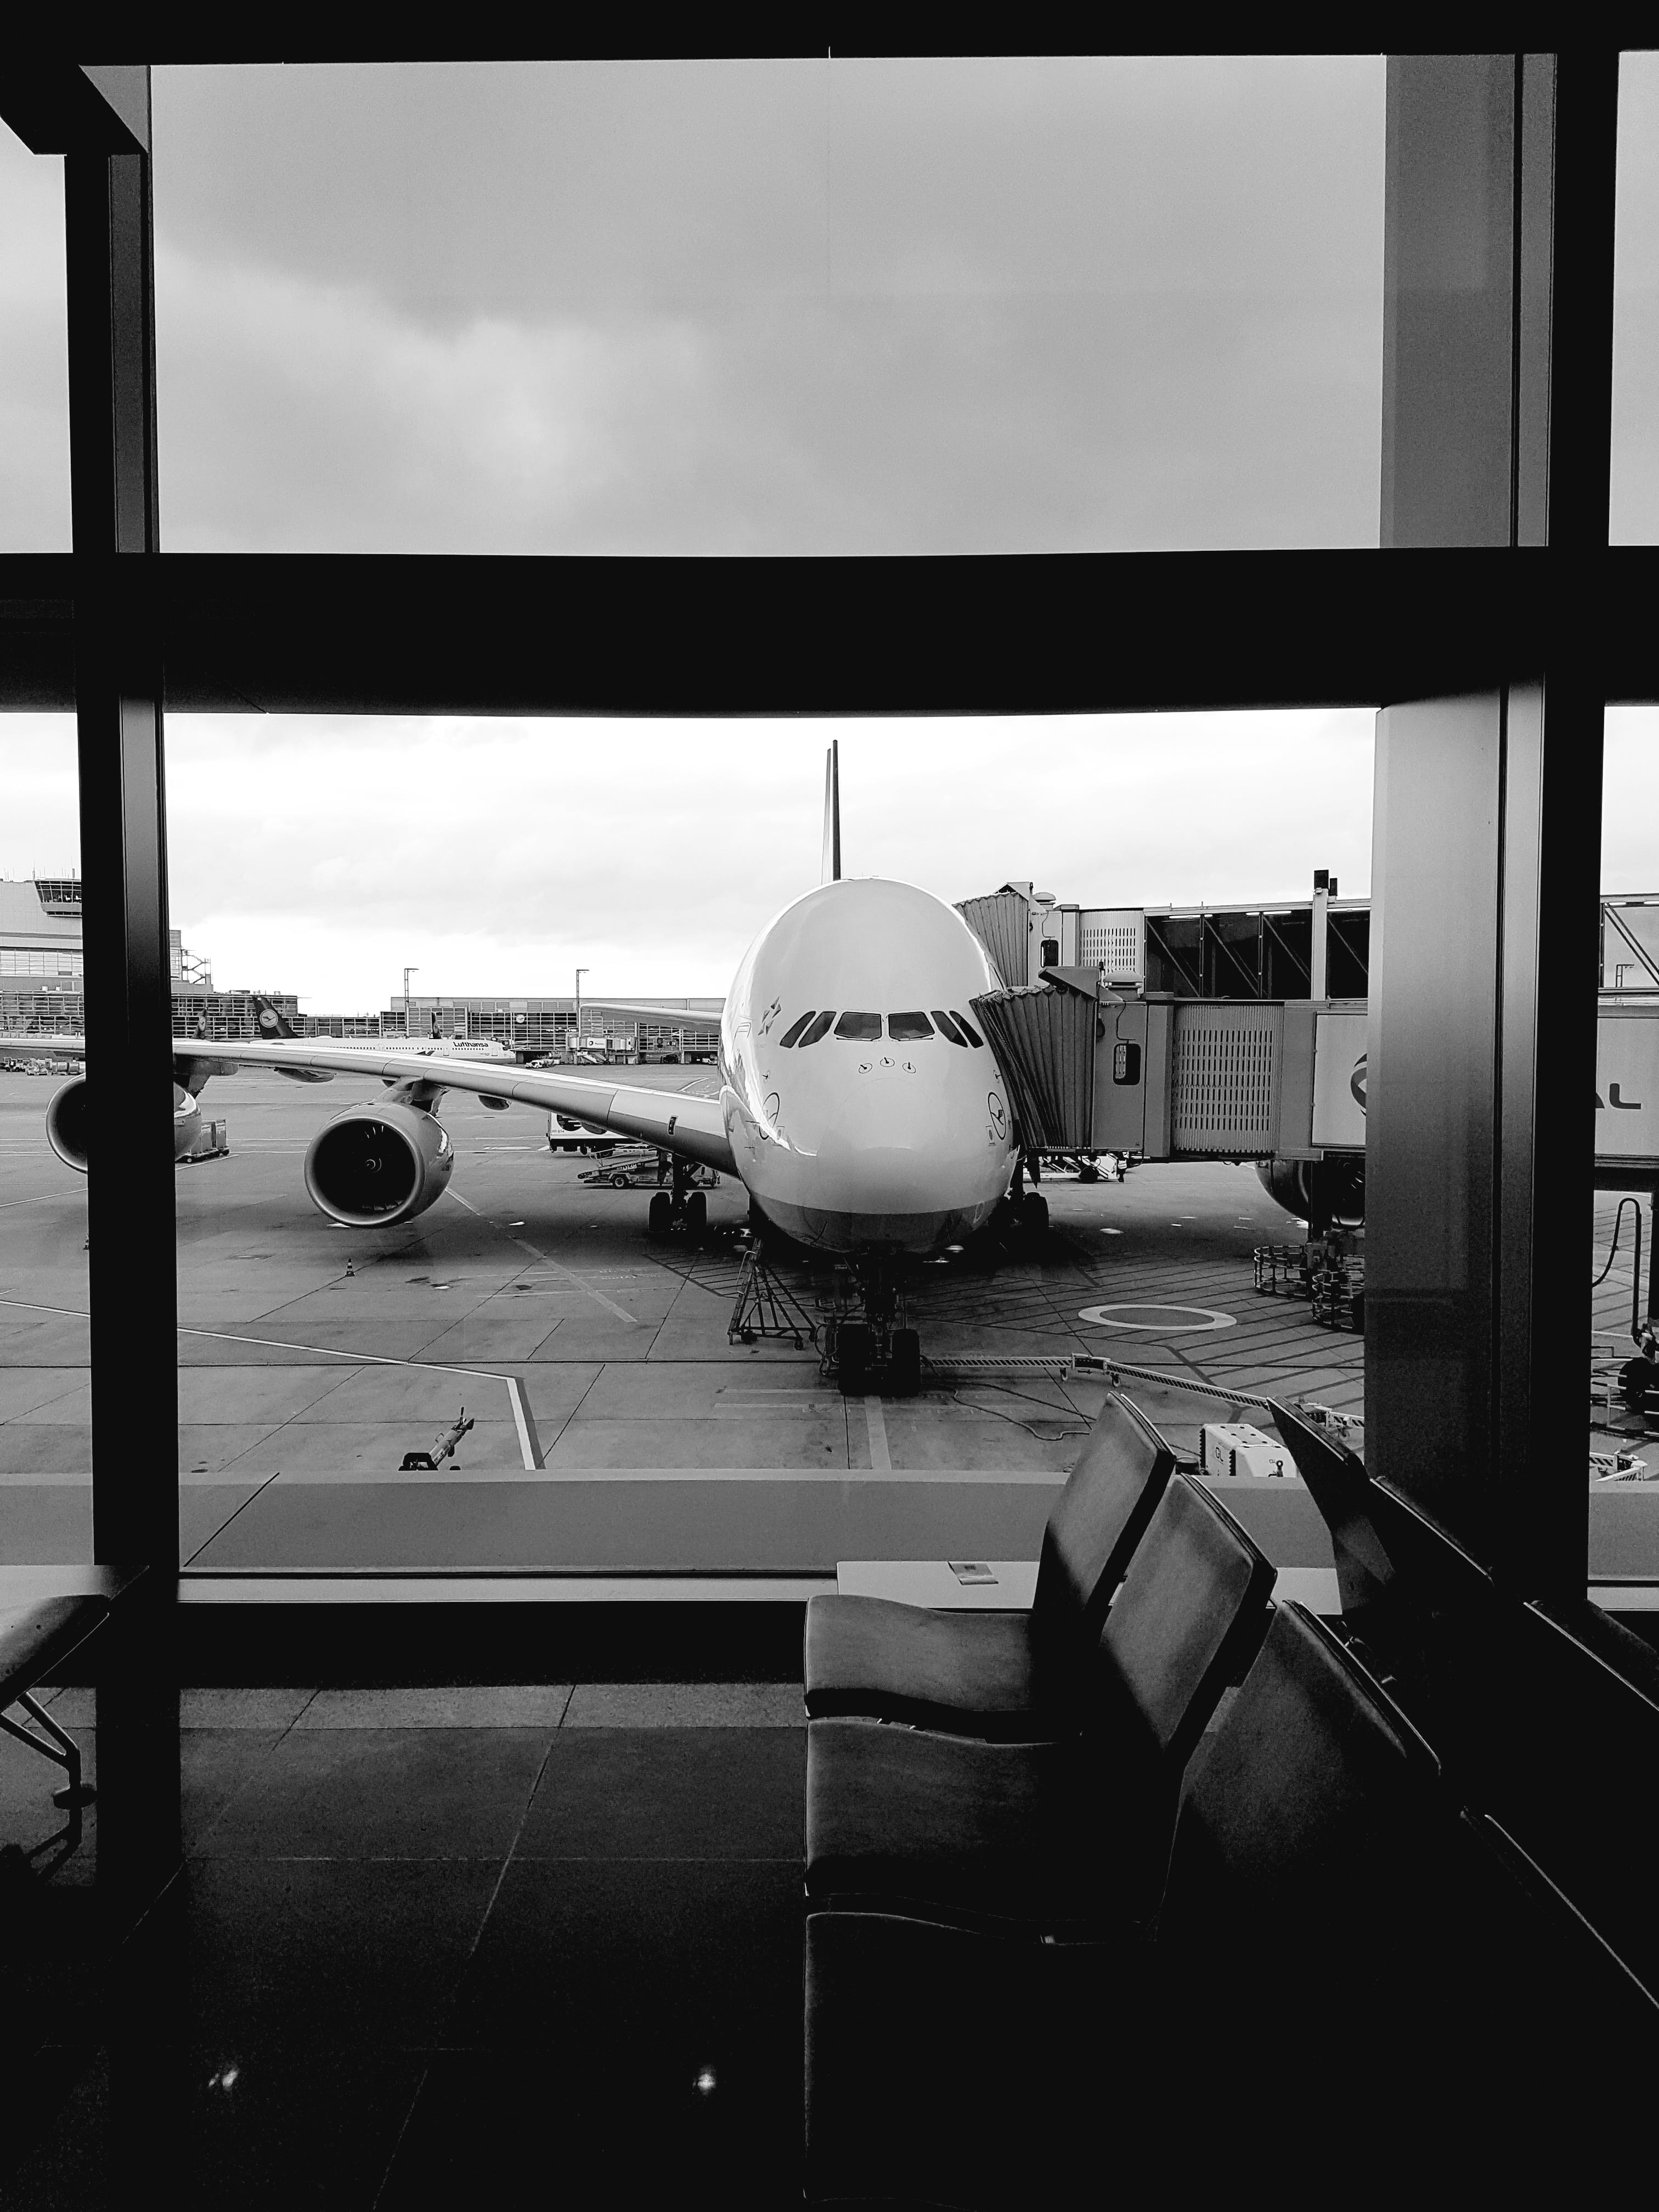 Free stock photo of airline, airplane, airport, Airport gate